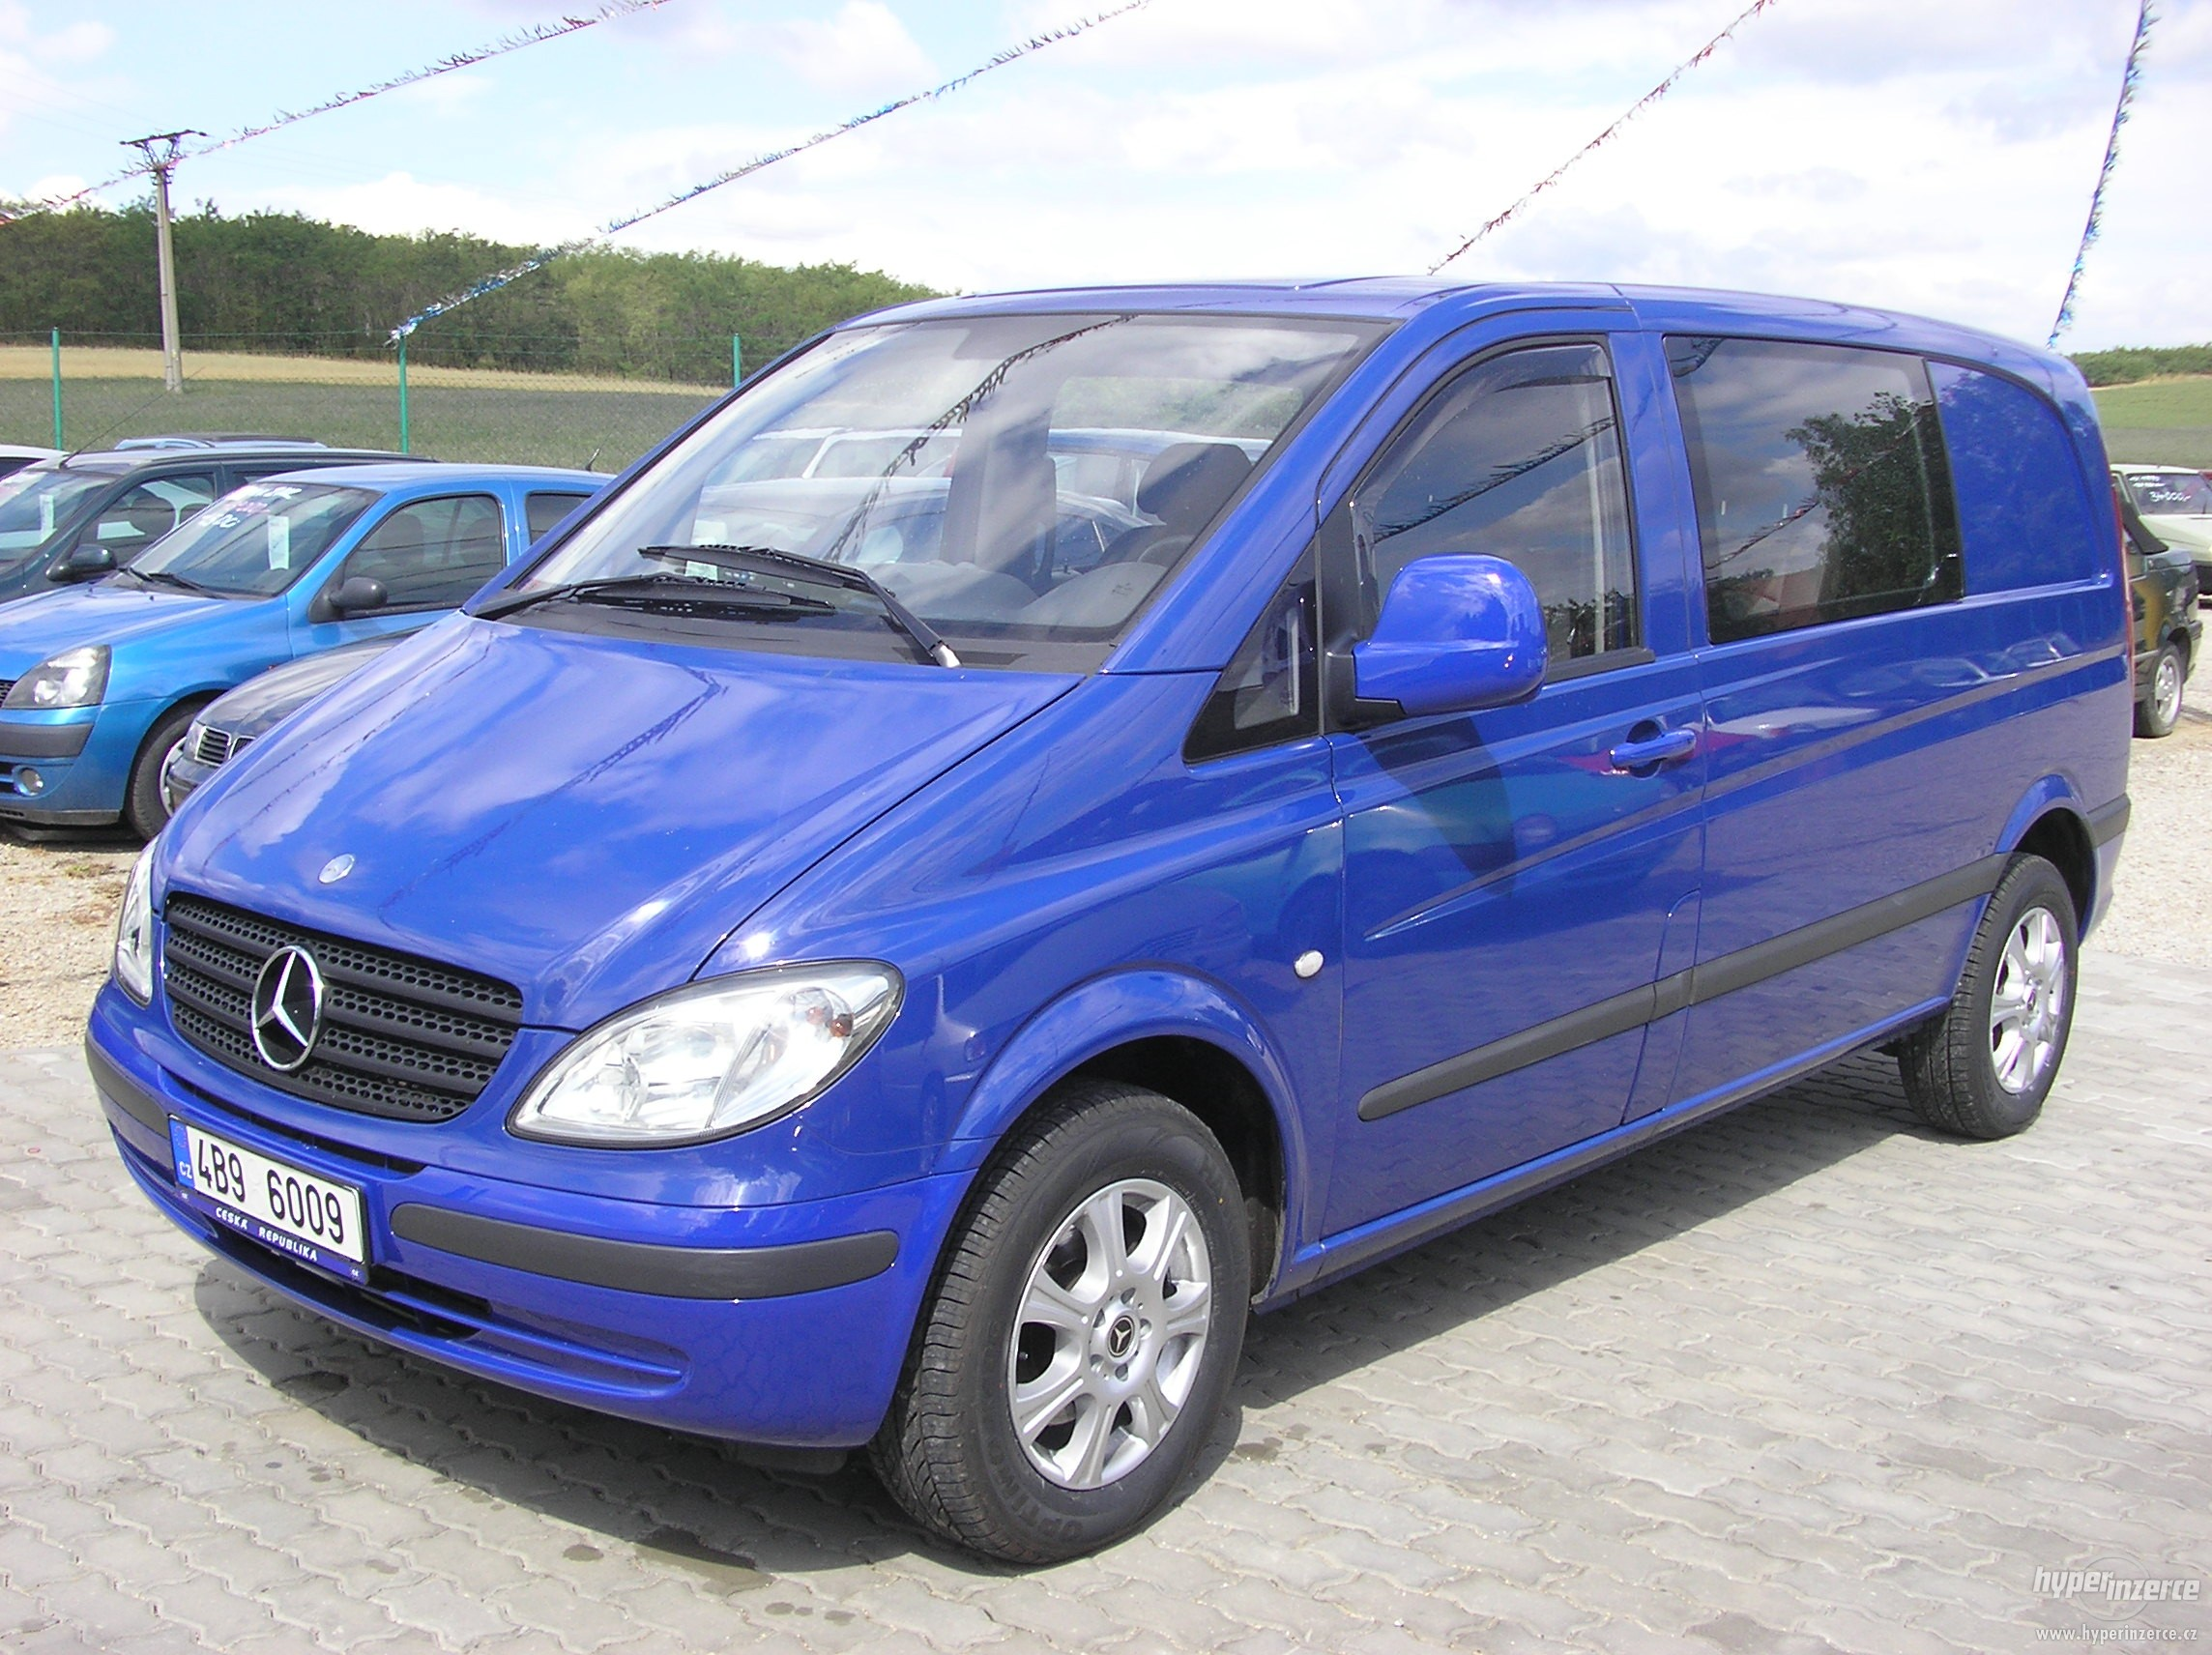 mercedes benz vito 111 cdi picture 10 reviews news specs buy car. Black Bedroom Furniture Sets. Home Design Ideas